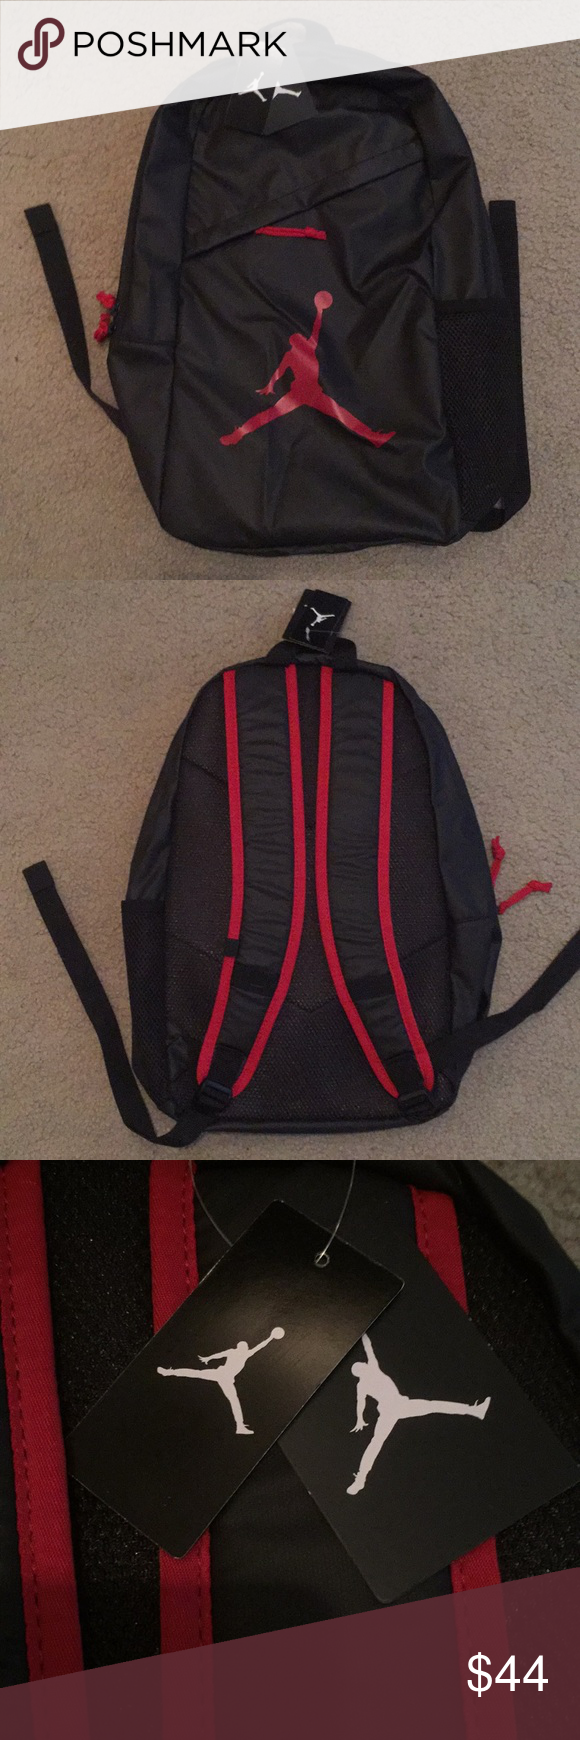 8ebe993ba7 NEW Jordan Brand Backpack Brand new Jordan Brand Backpack! The bag is black  and red and the tags are still attached! Jordan Bags Backpacks